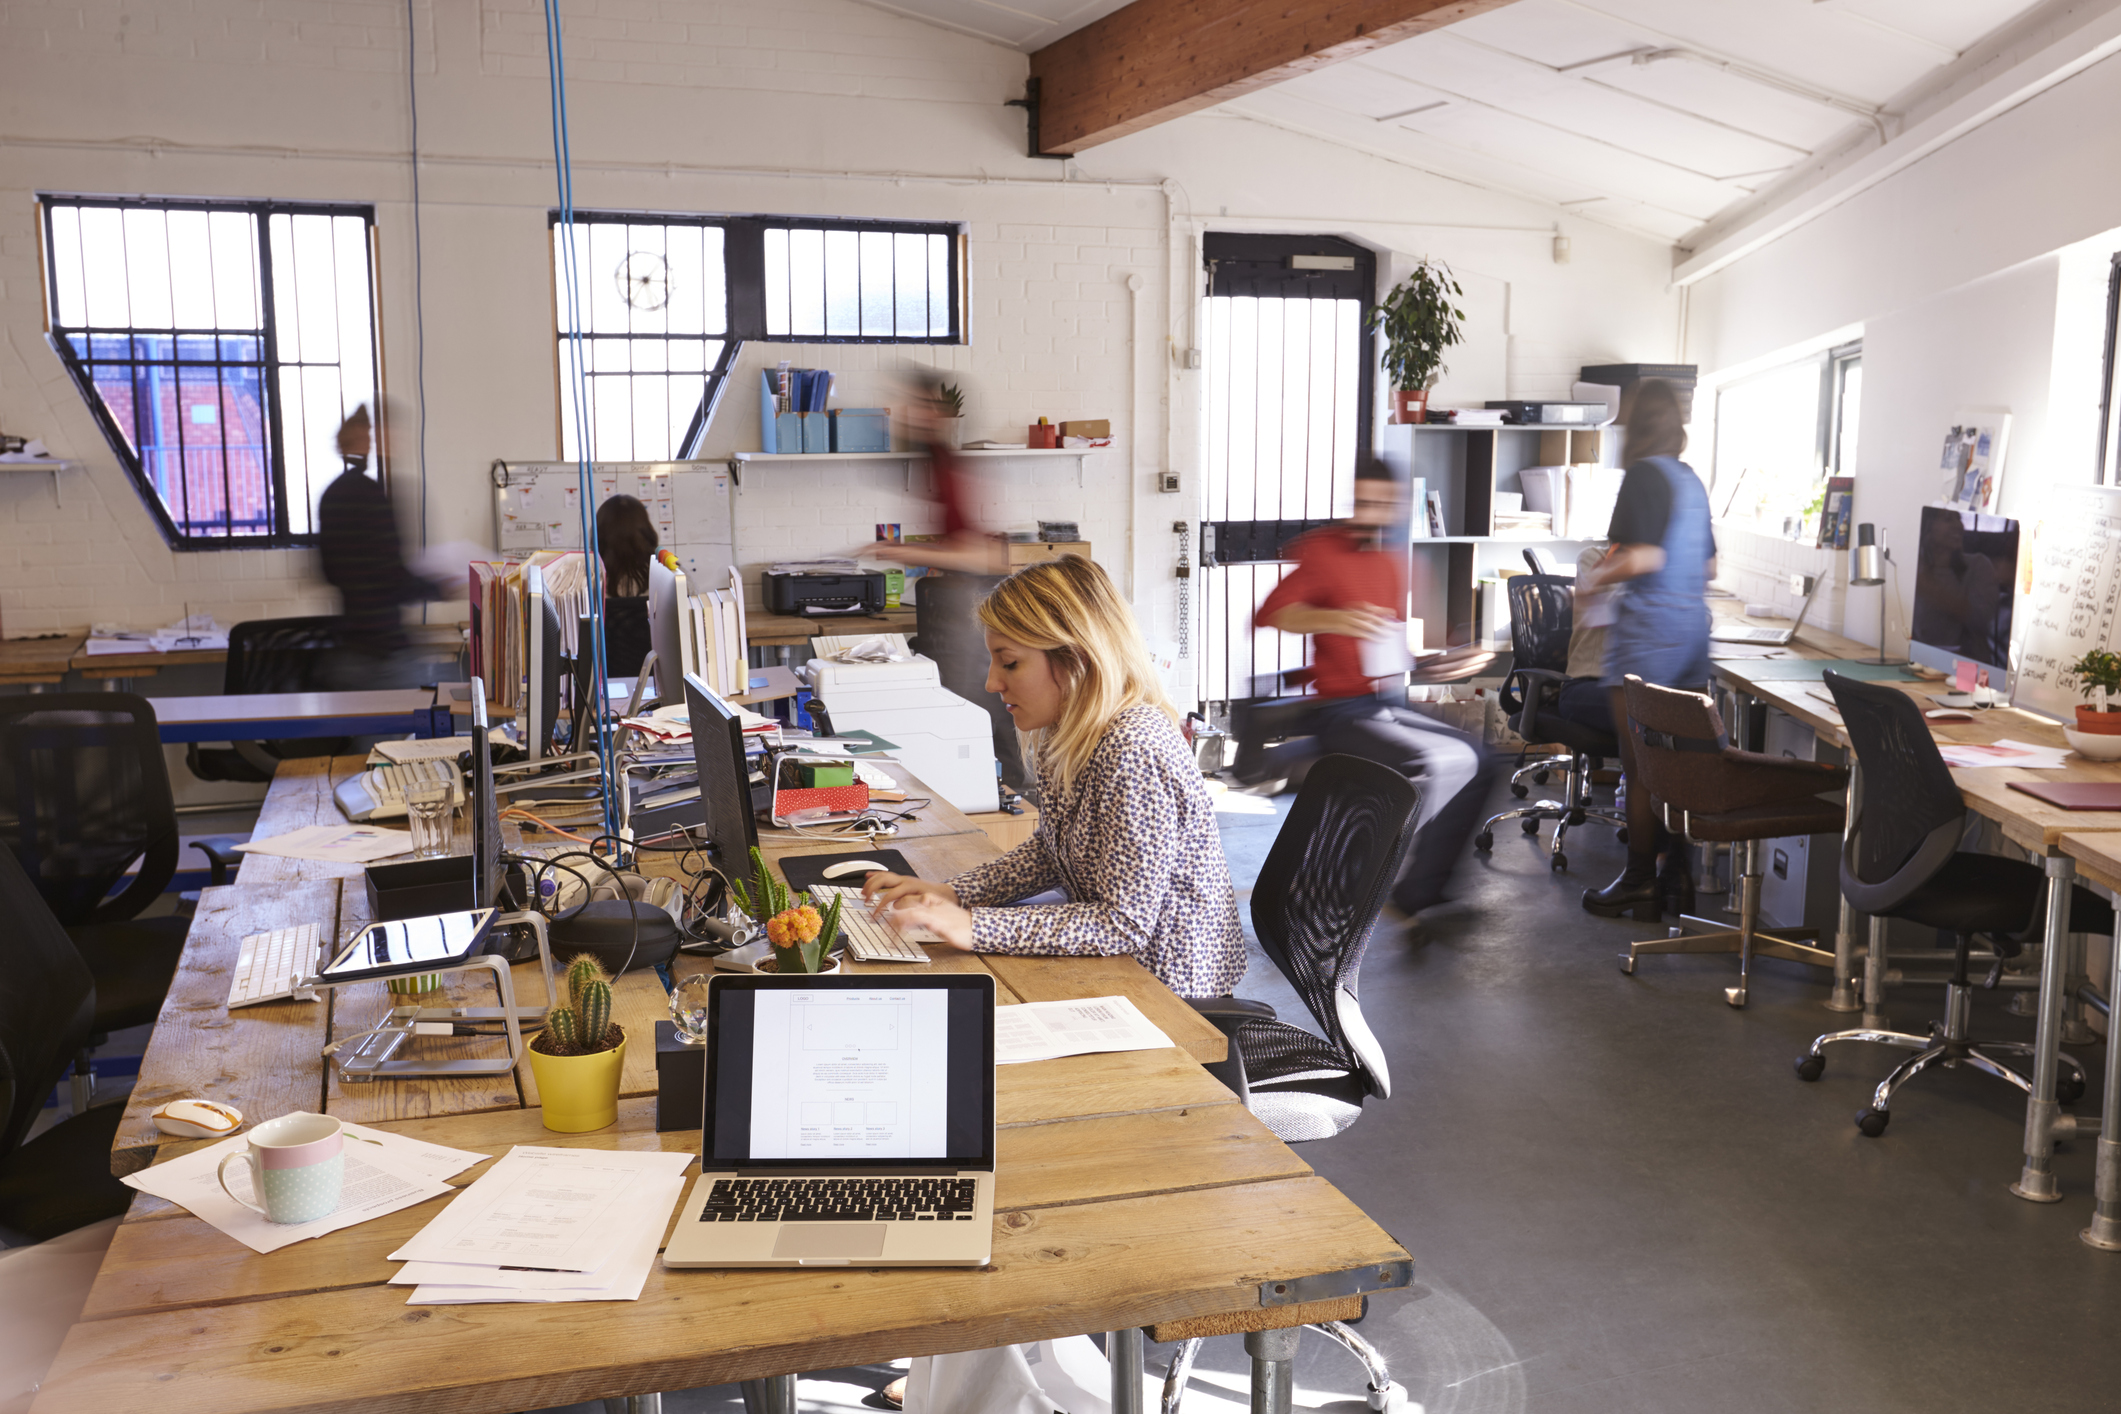 How To Be Productive In A Chaotic Environment WorkLife